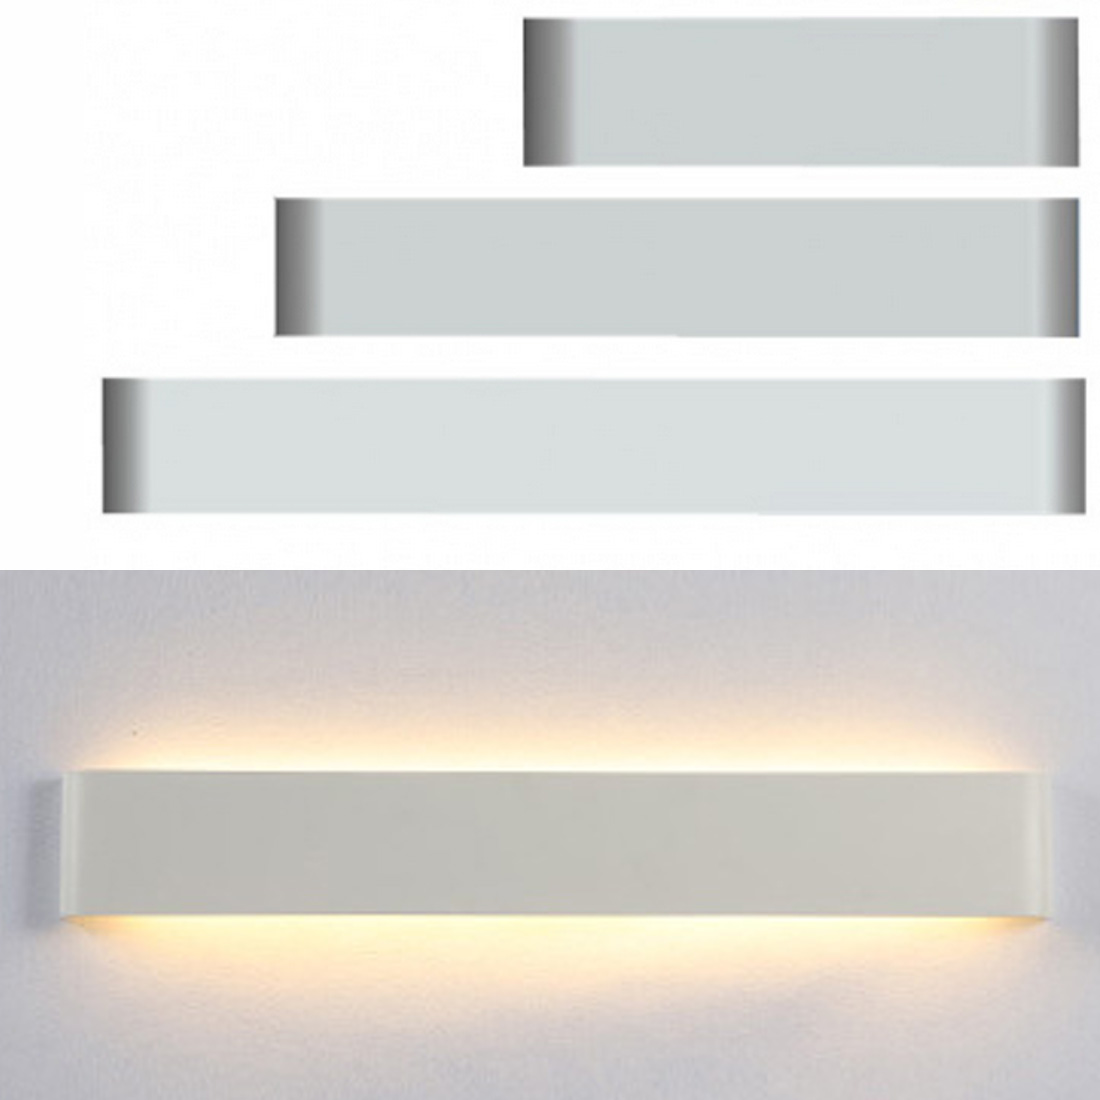 Silver/Black Modern Minimalist LED Aluminum Lamp Bedside Lamp Wall Lamp for Room Bathroom Mirror Light Direct Creative Aisle 40cm 12w acryl aluminum led wall lamp mirror light for bathroom aisle living room waterproof anti fog mirror lamps 2131